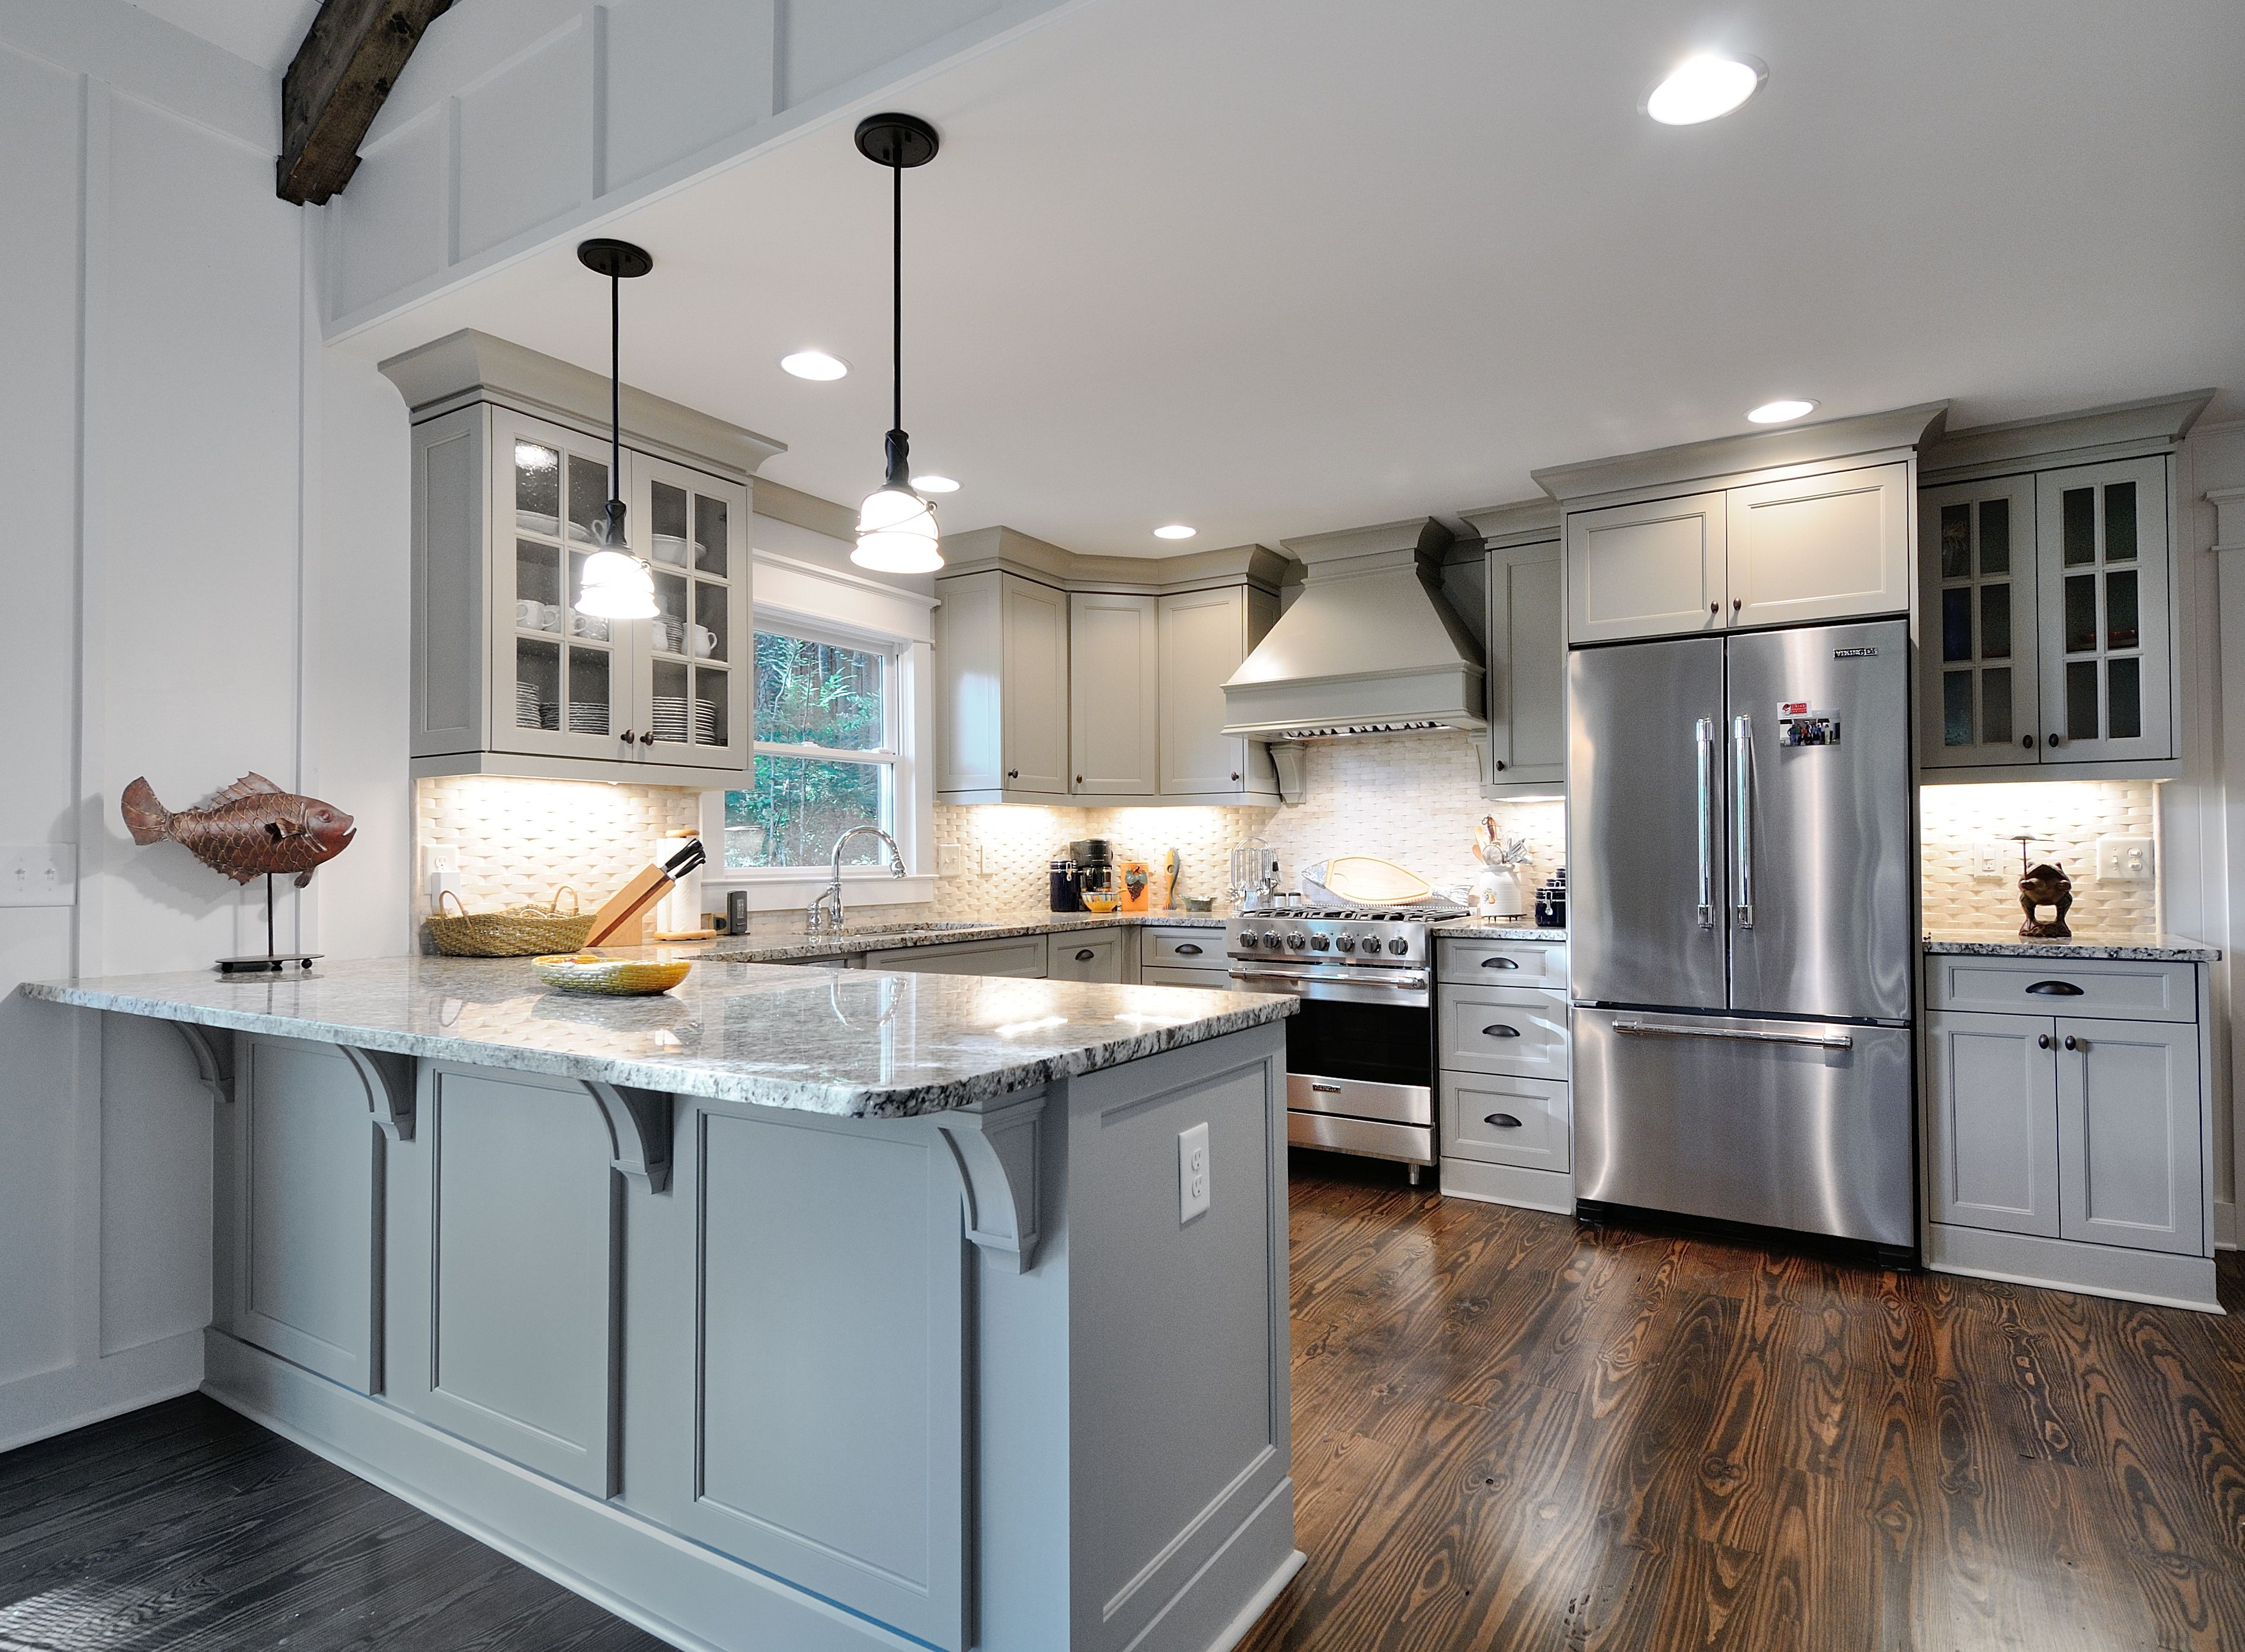 Country Kitchen Vero Beach Full Overlay Georgia Shaker Style Rp Cabinets Options